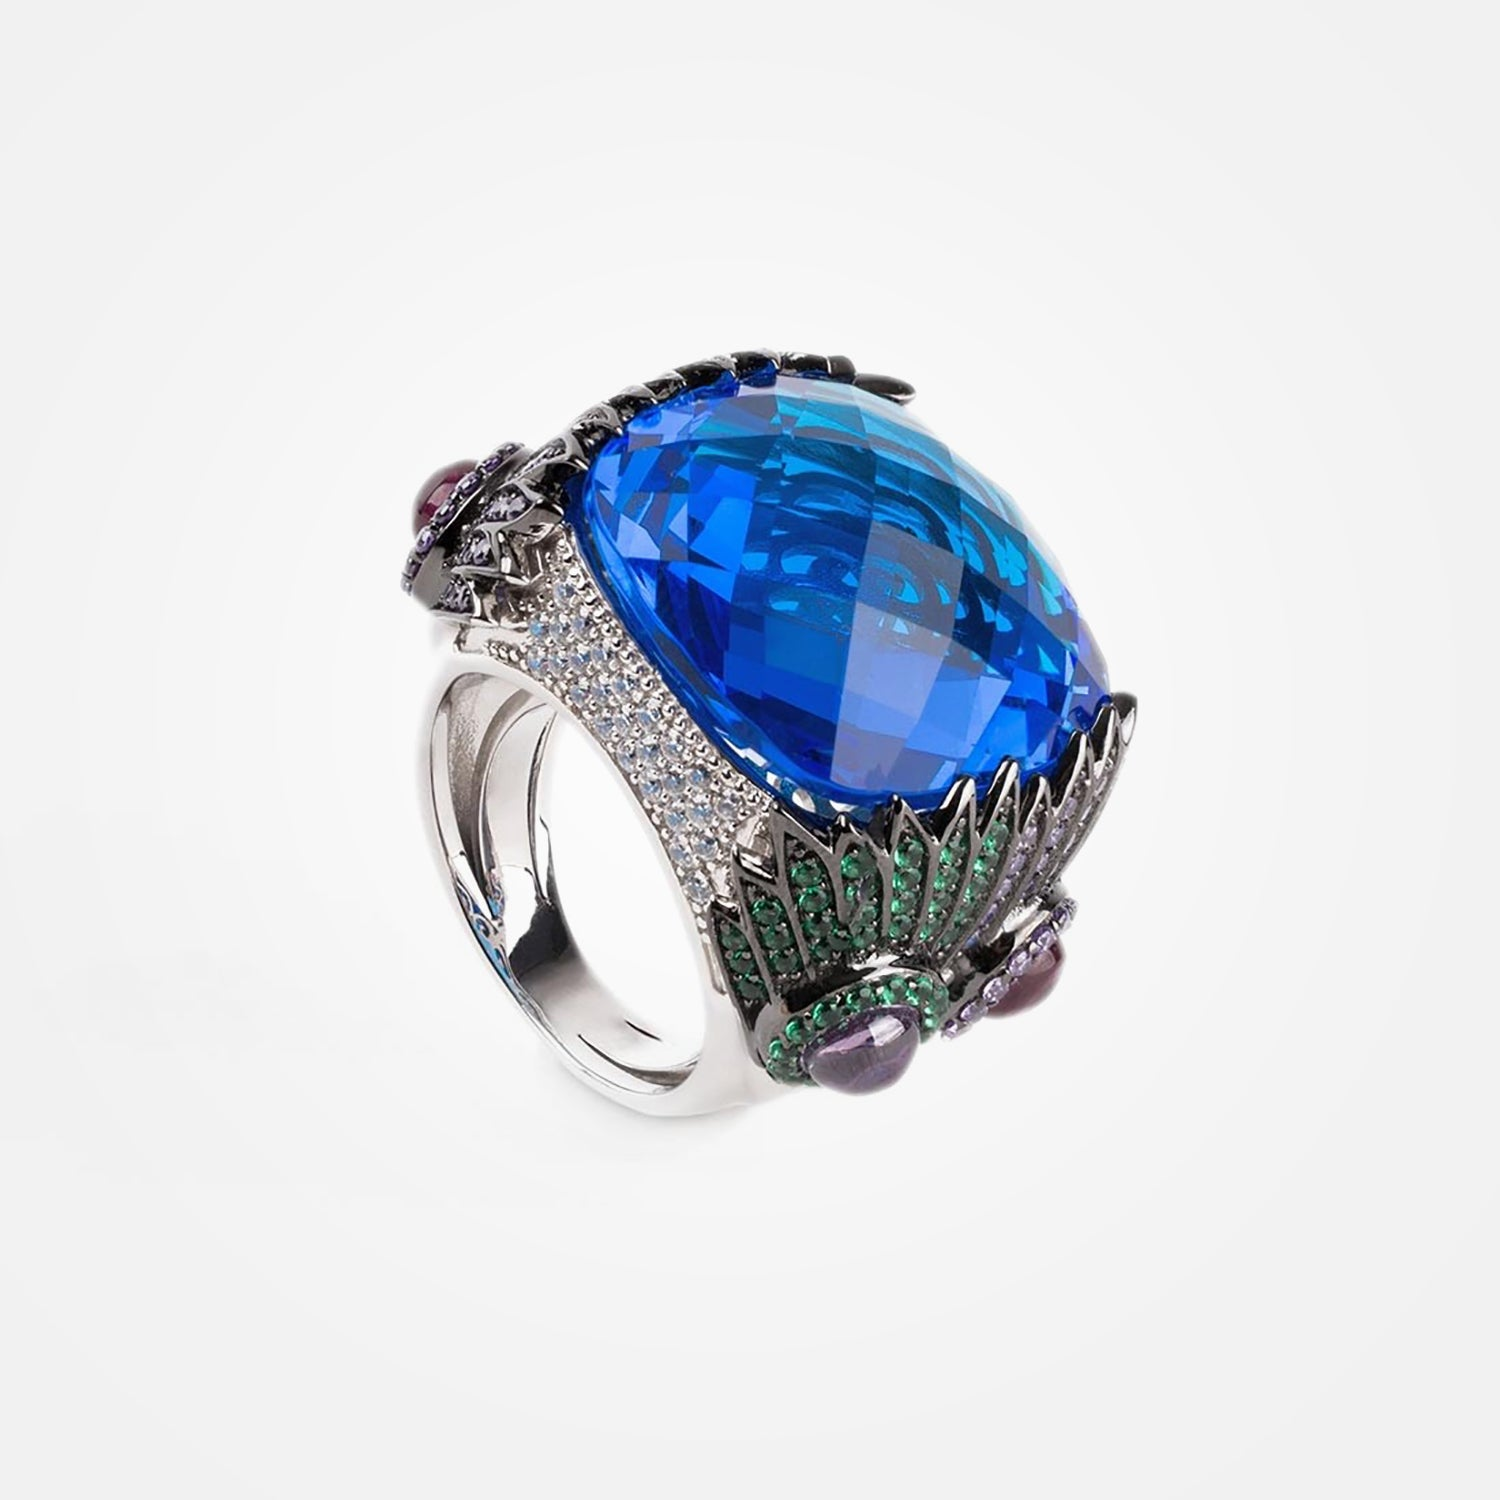 Rhodium Plated 925 Silver Sultan Ring by Daniel Espinosa